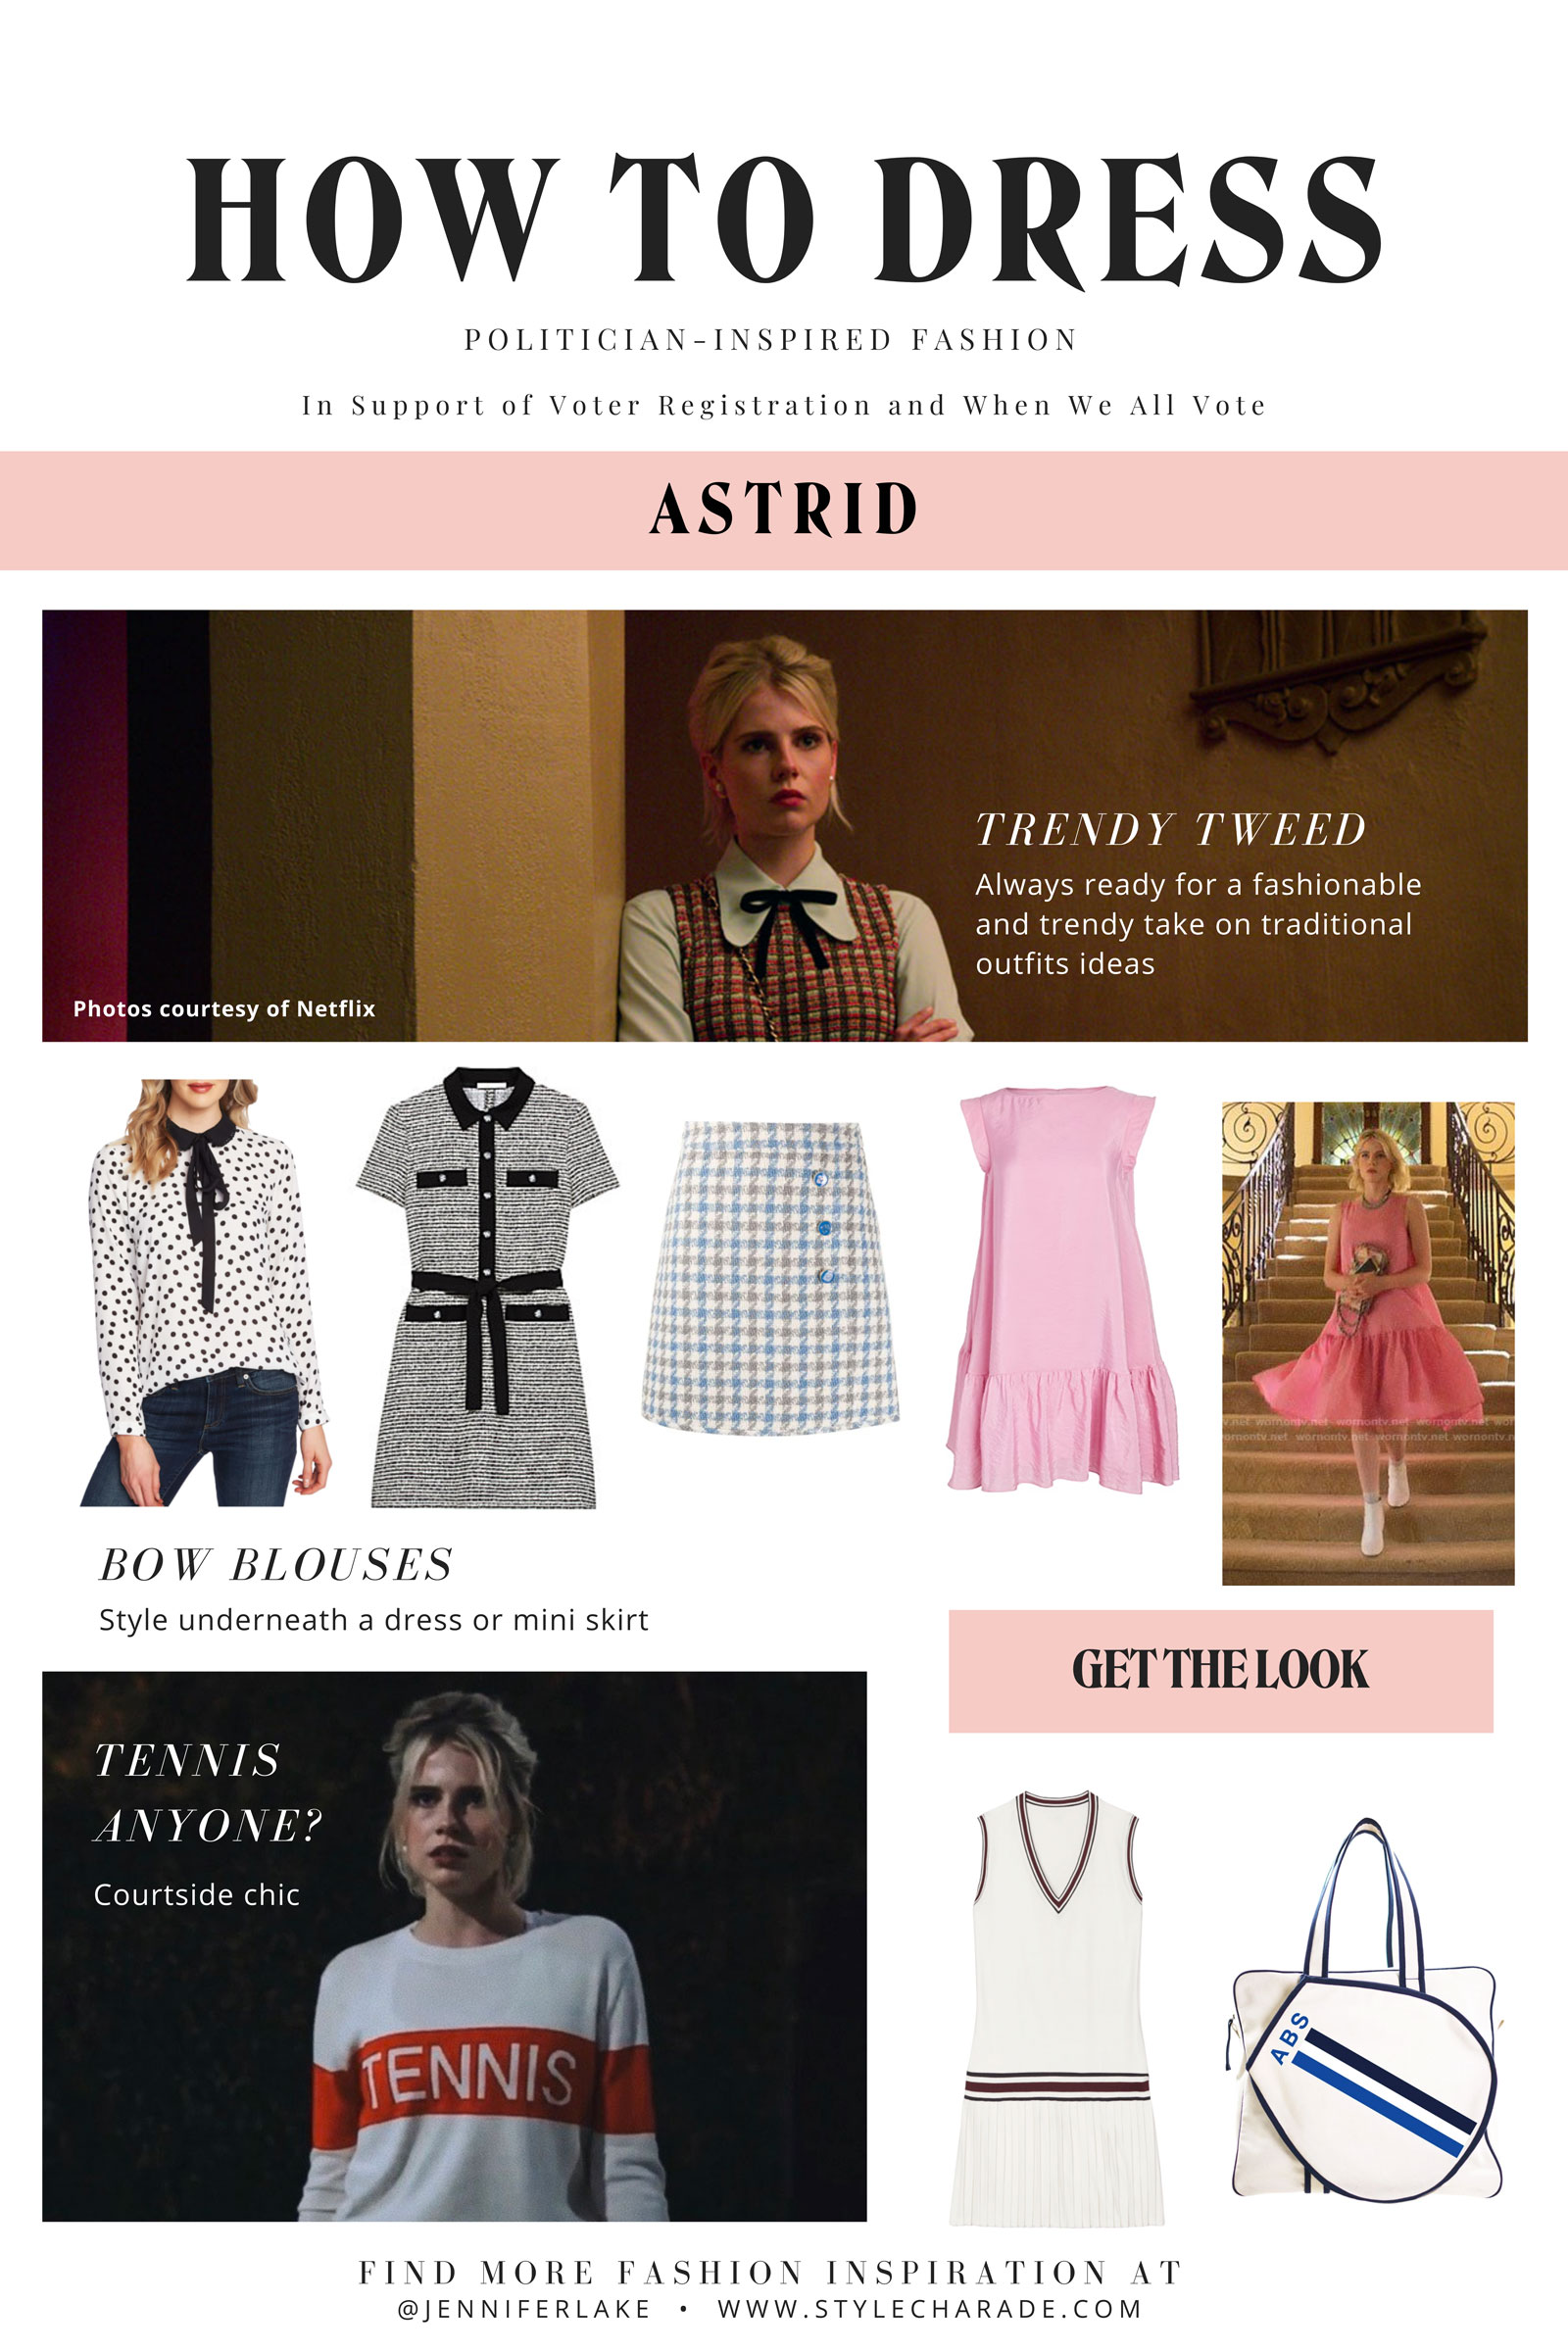 Politician Astrid Sloan Outfit Ideas